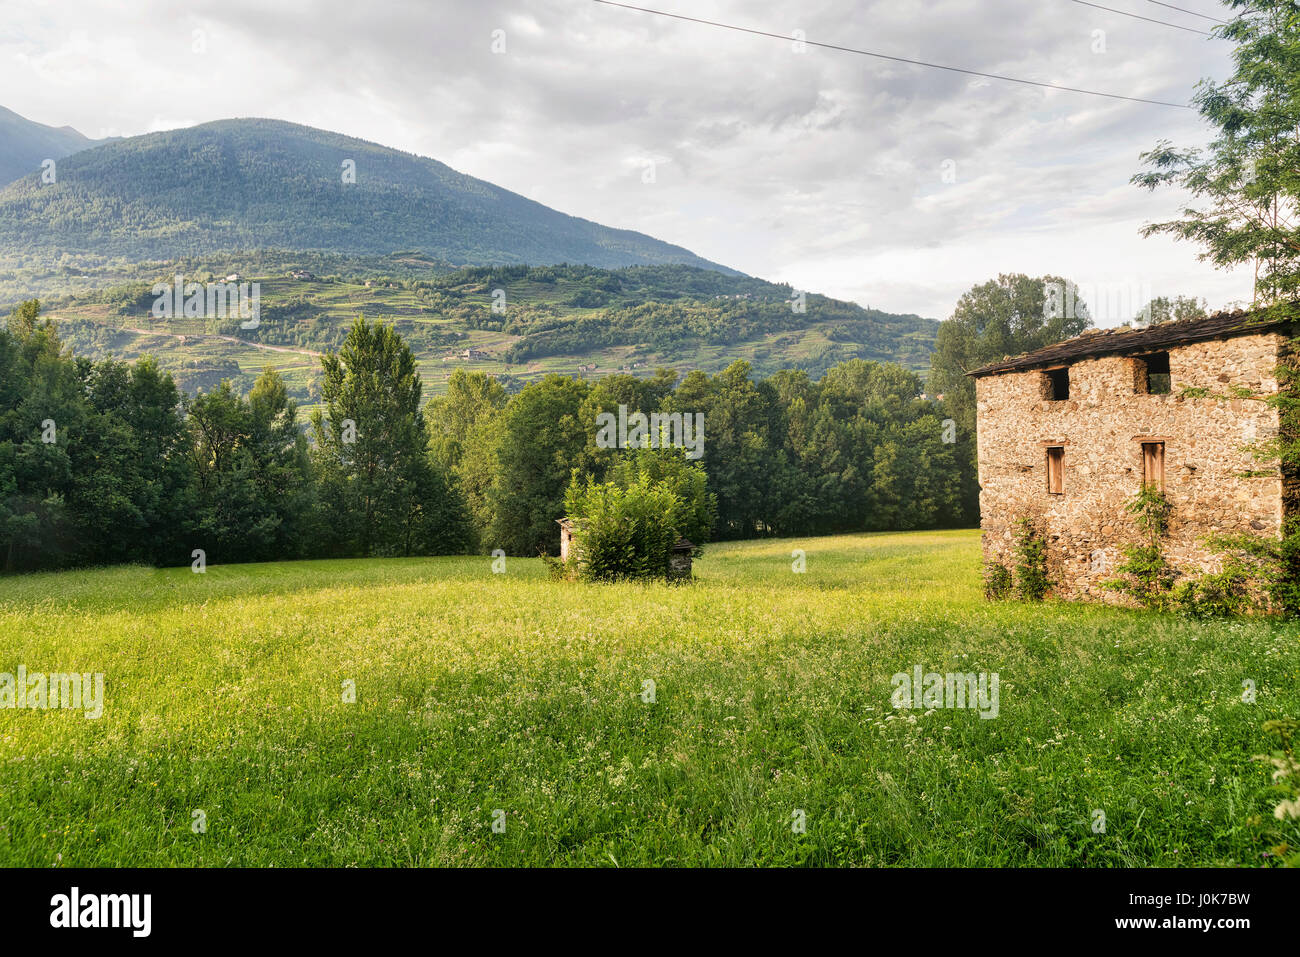 Sentiero della Valtellina, bicycle path along the Adda river iat summer Stock Photo